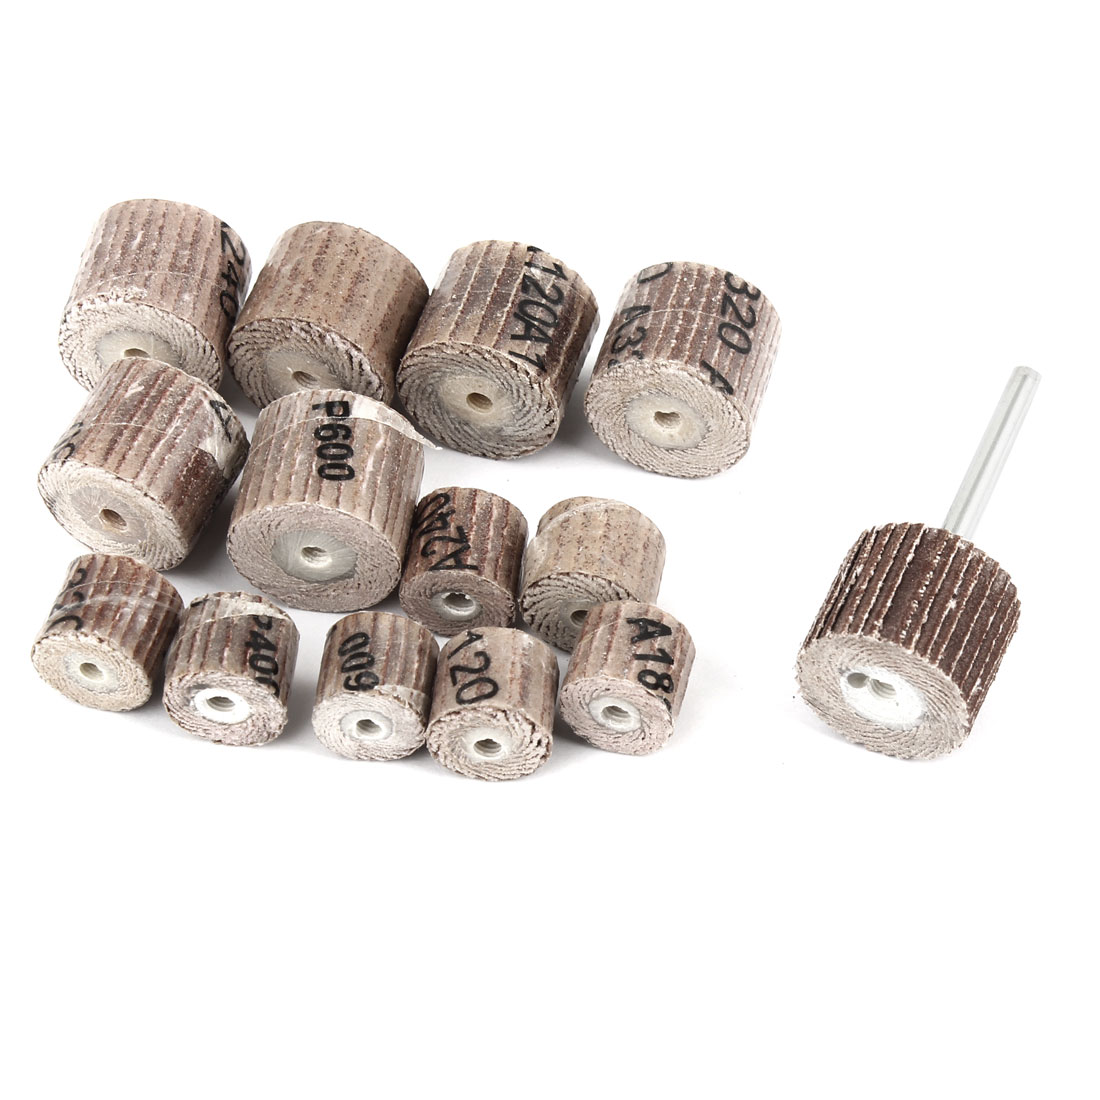 14 in 1 Emery Cloth 7 Types Cylindrical Shape Grit Grinding Flap Wheel Brushes